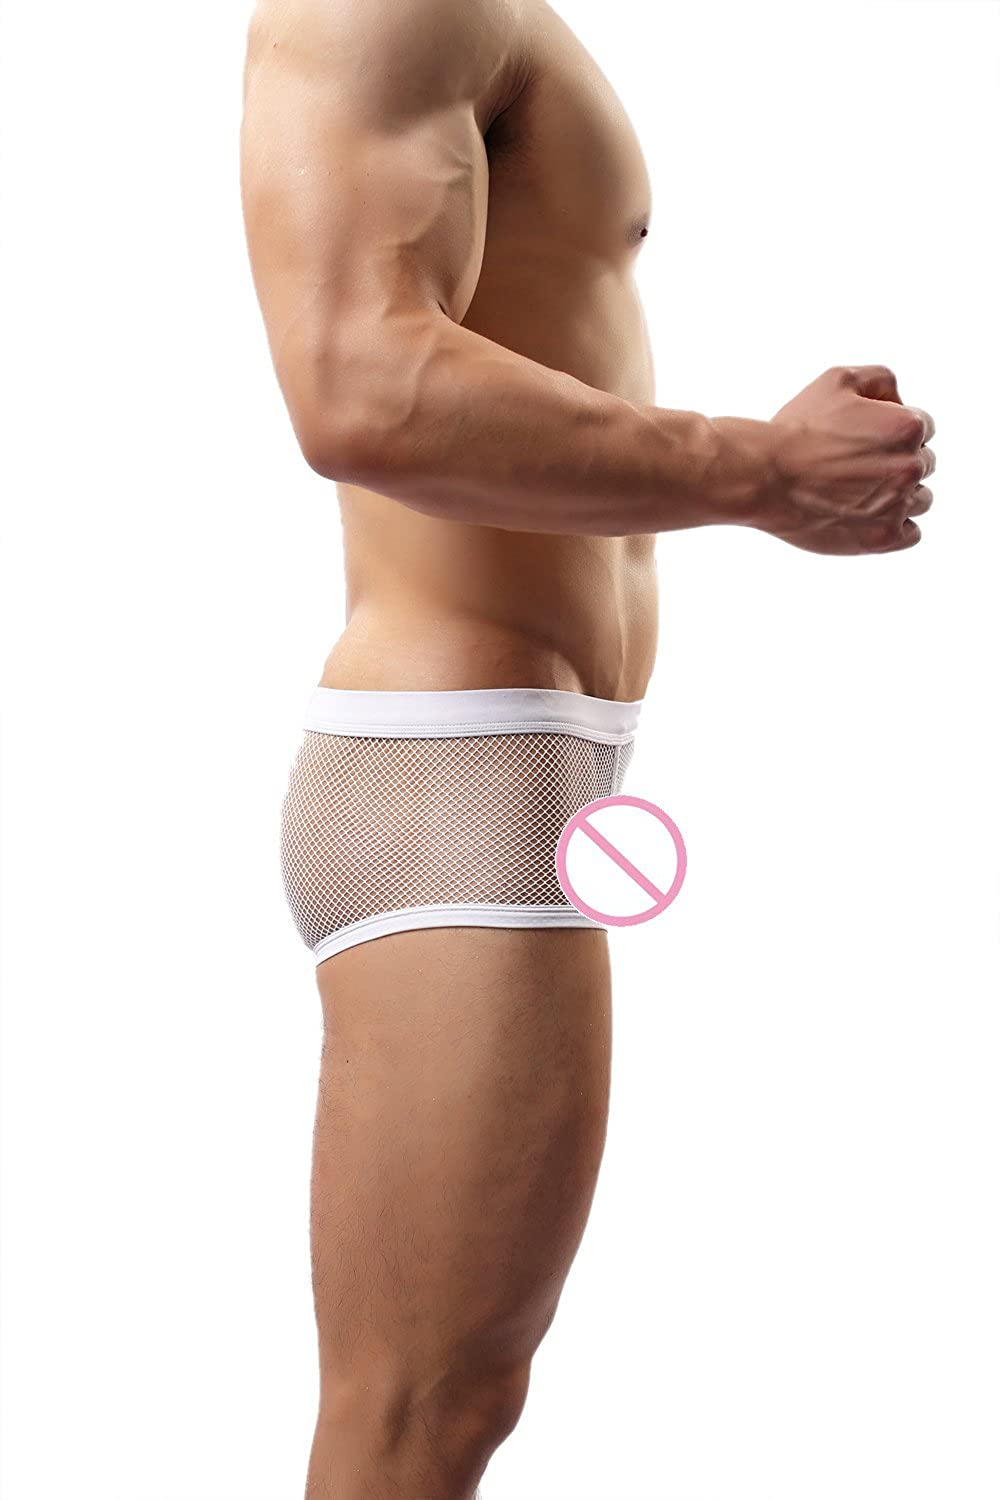 64634108d65f WOWHOMME Mens Sexy Boxer Briefs Mesh Pants Sheer See Through Underwear  Underpants C24 at Amazon Men's Clothing store: